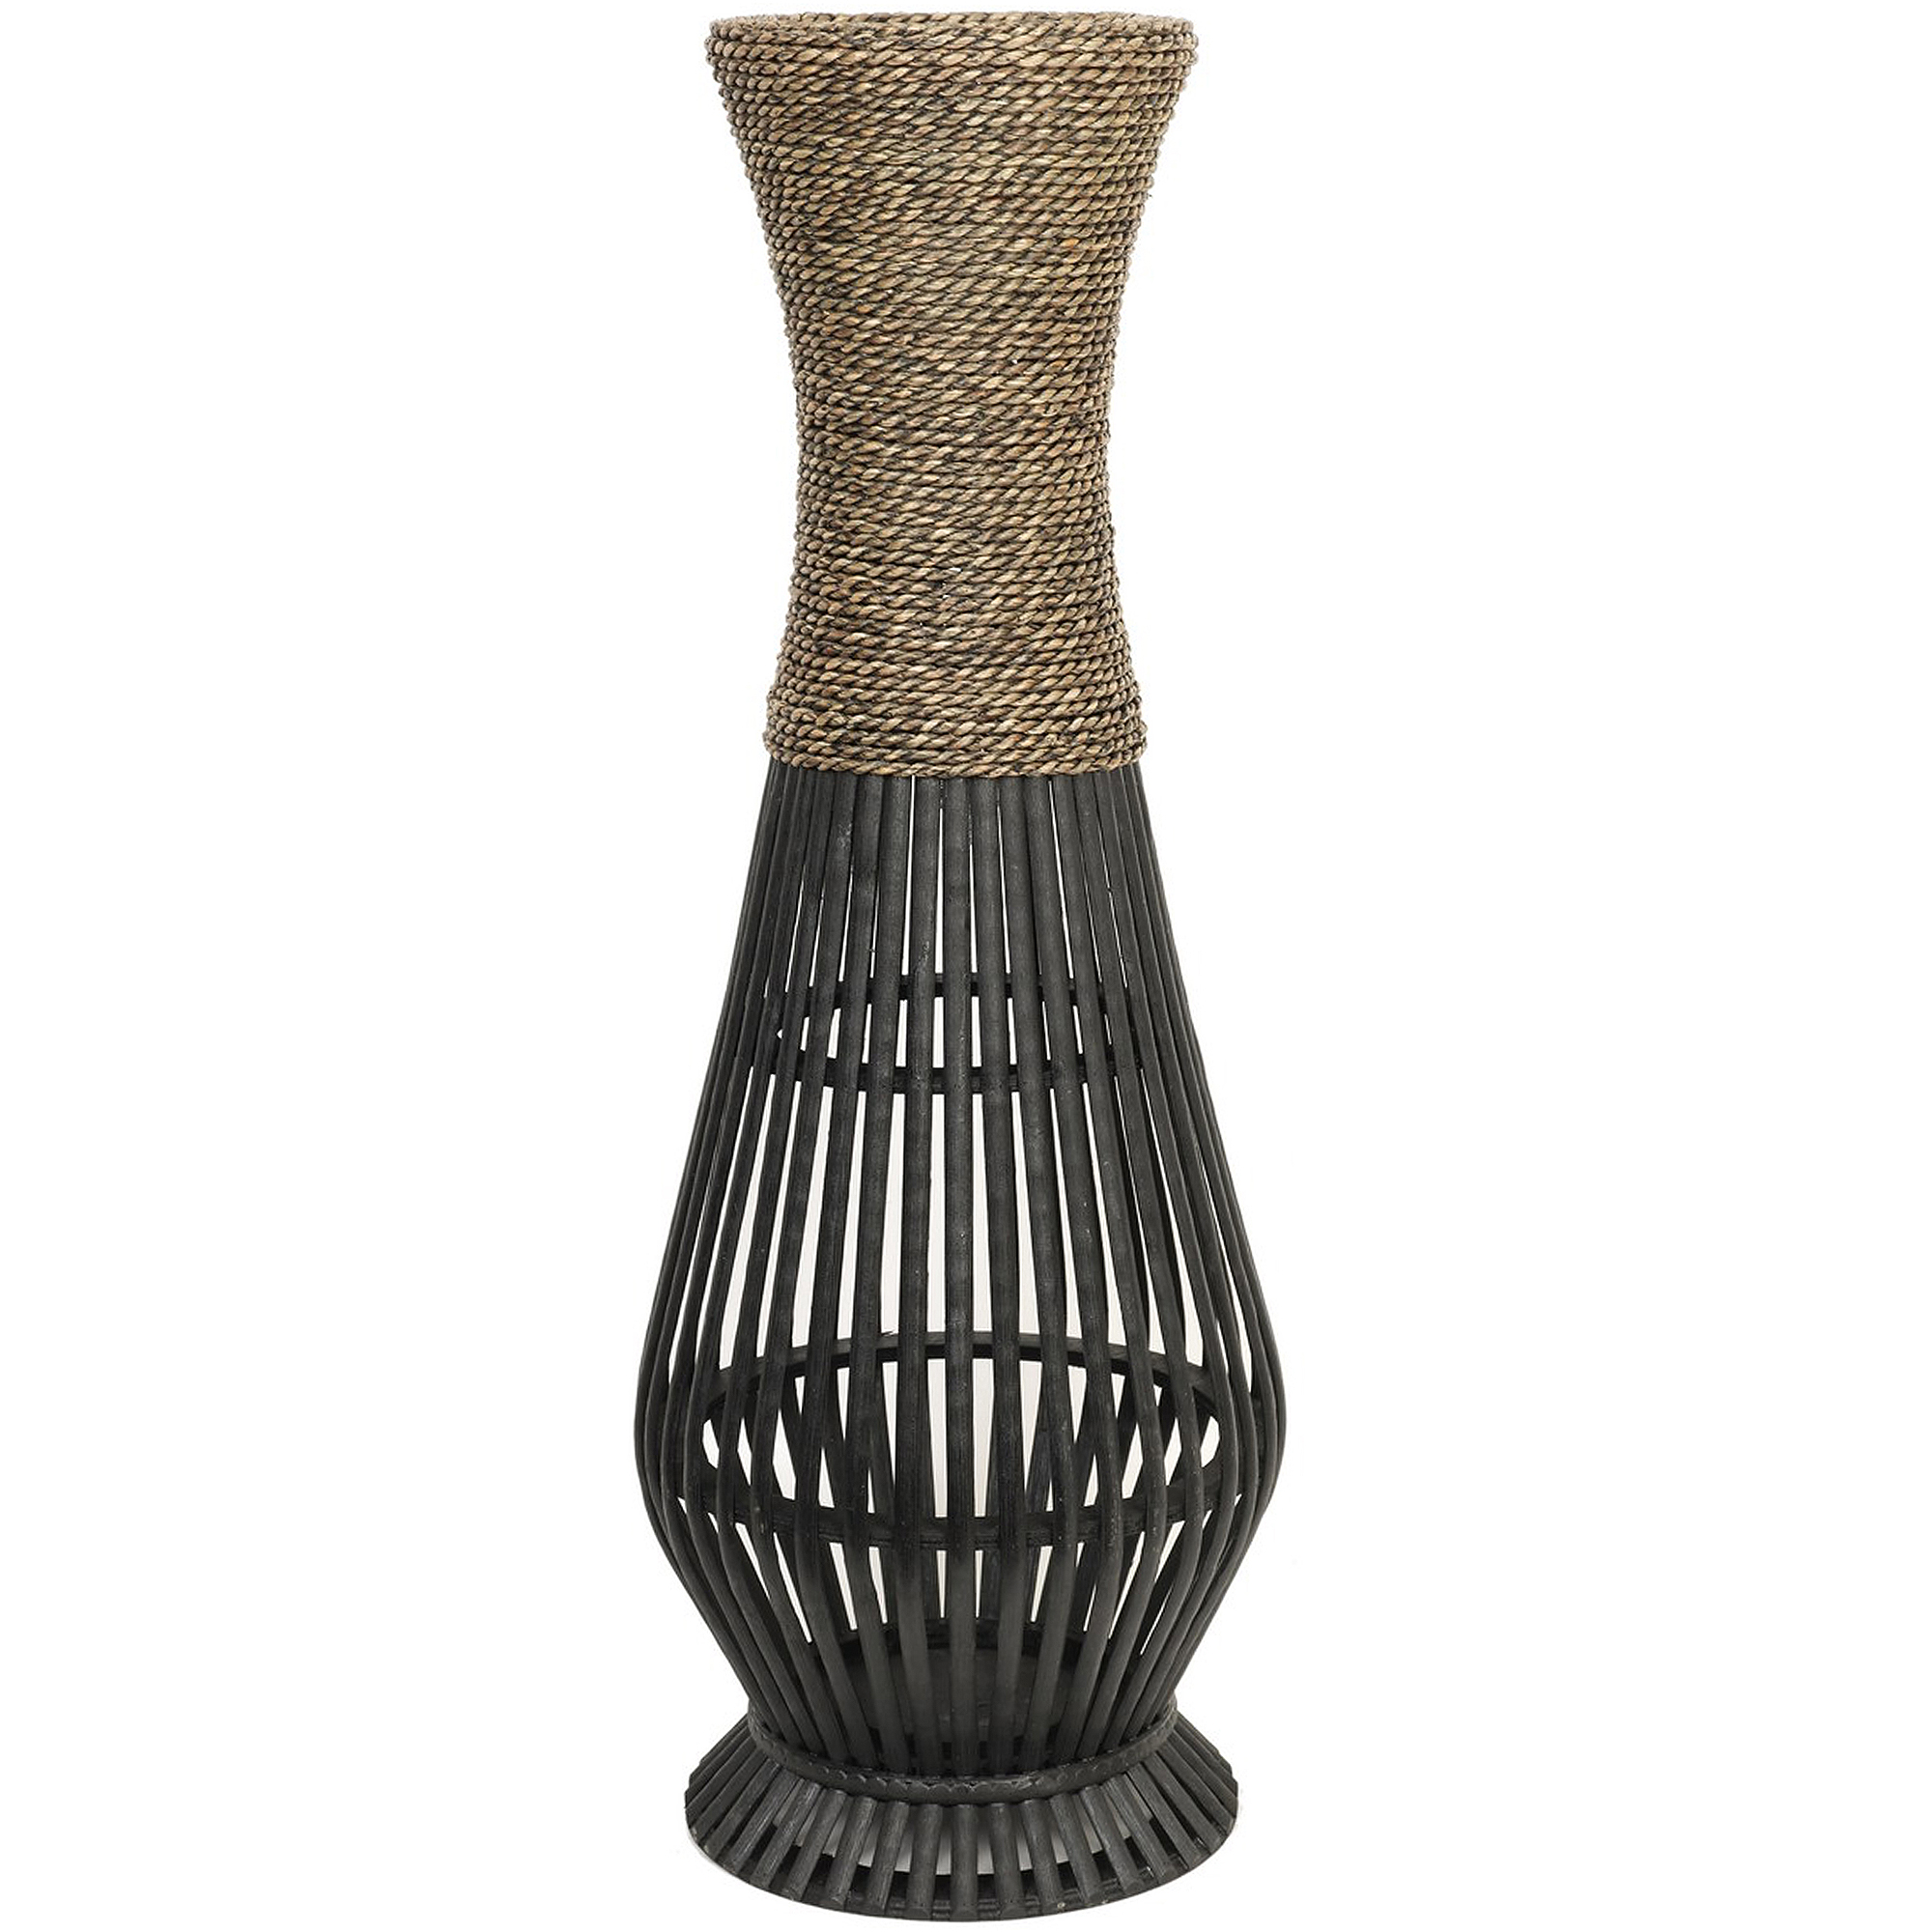 Home Vases Hosley Natural Bamboo Seagrass Vase Home Decor Flower Tall